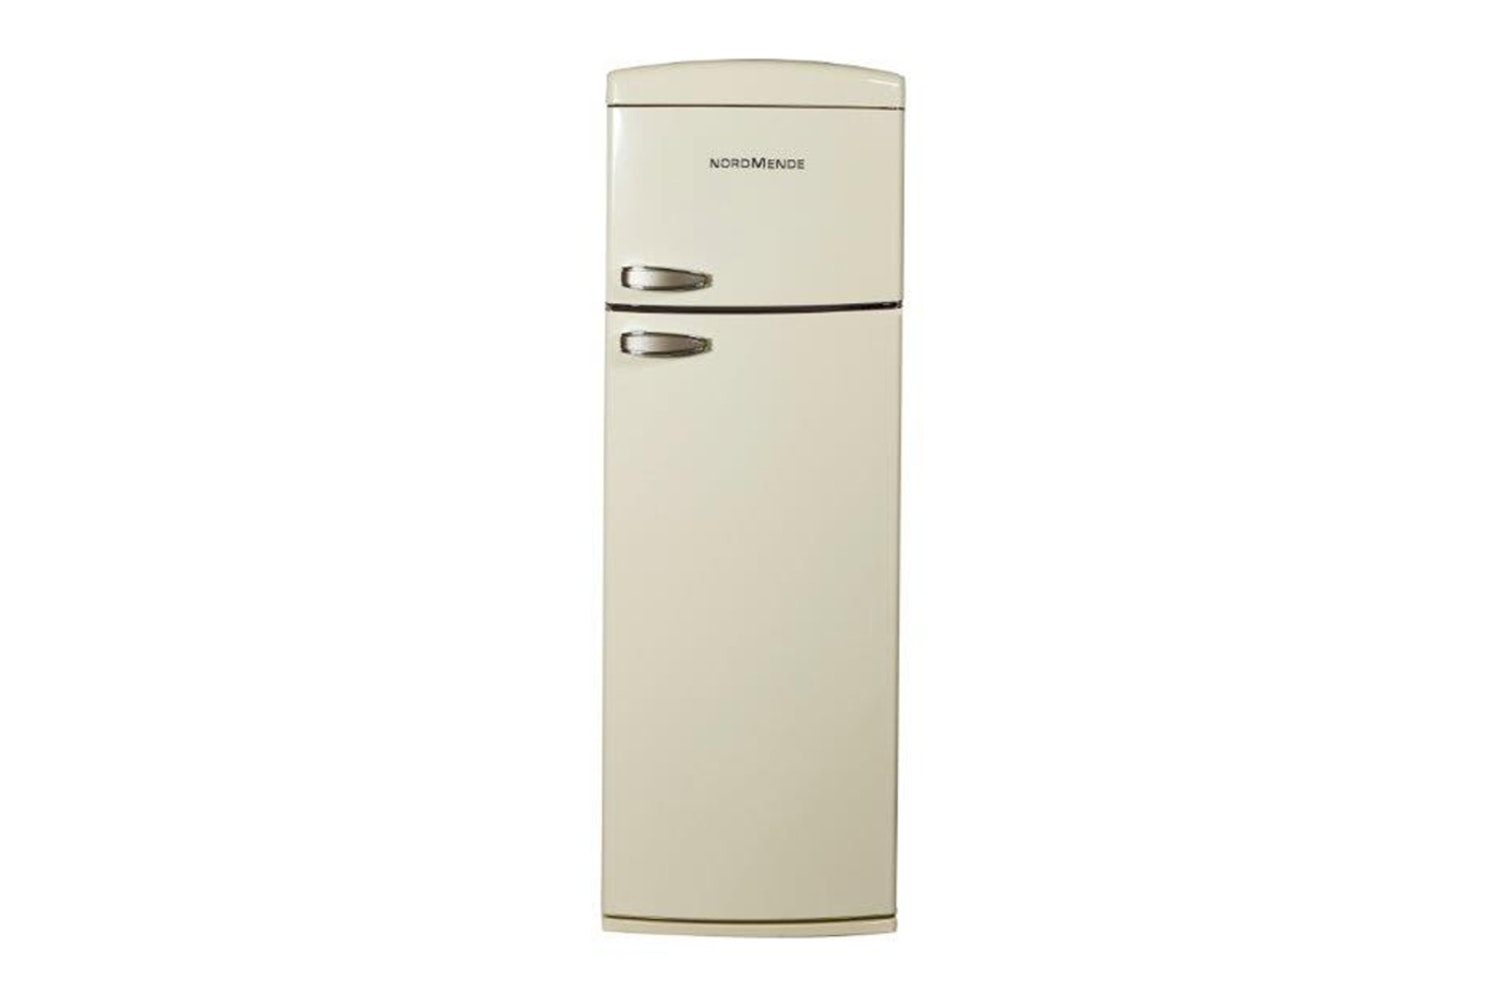 Nordmende Retro Freestanding Fridge Freezer | RET347CA+